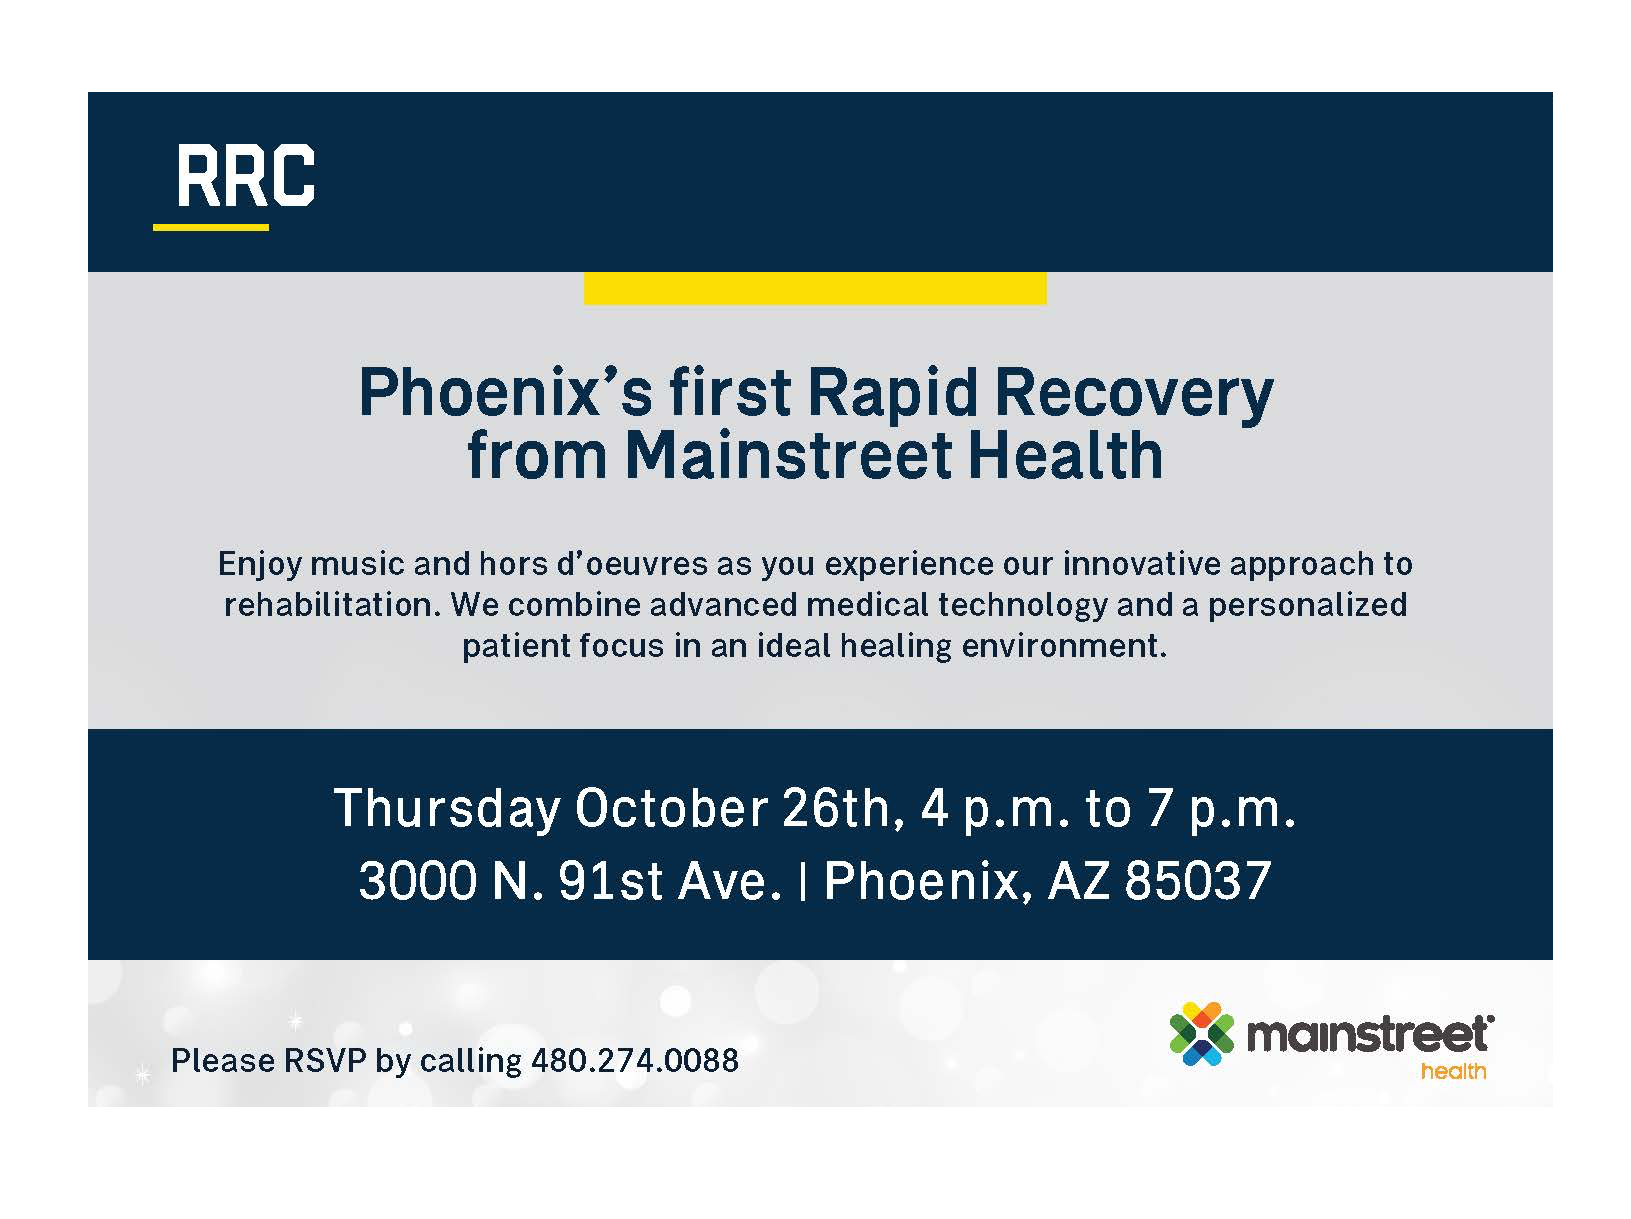 Phoenix's first Rapid Recovery from Mainstreet Health